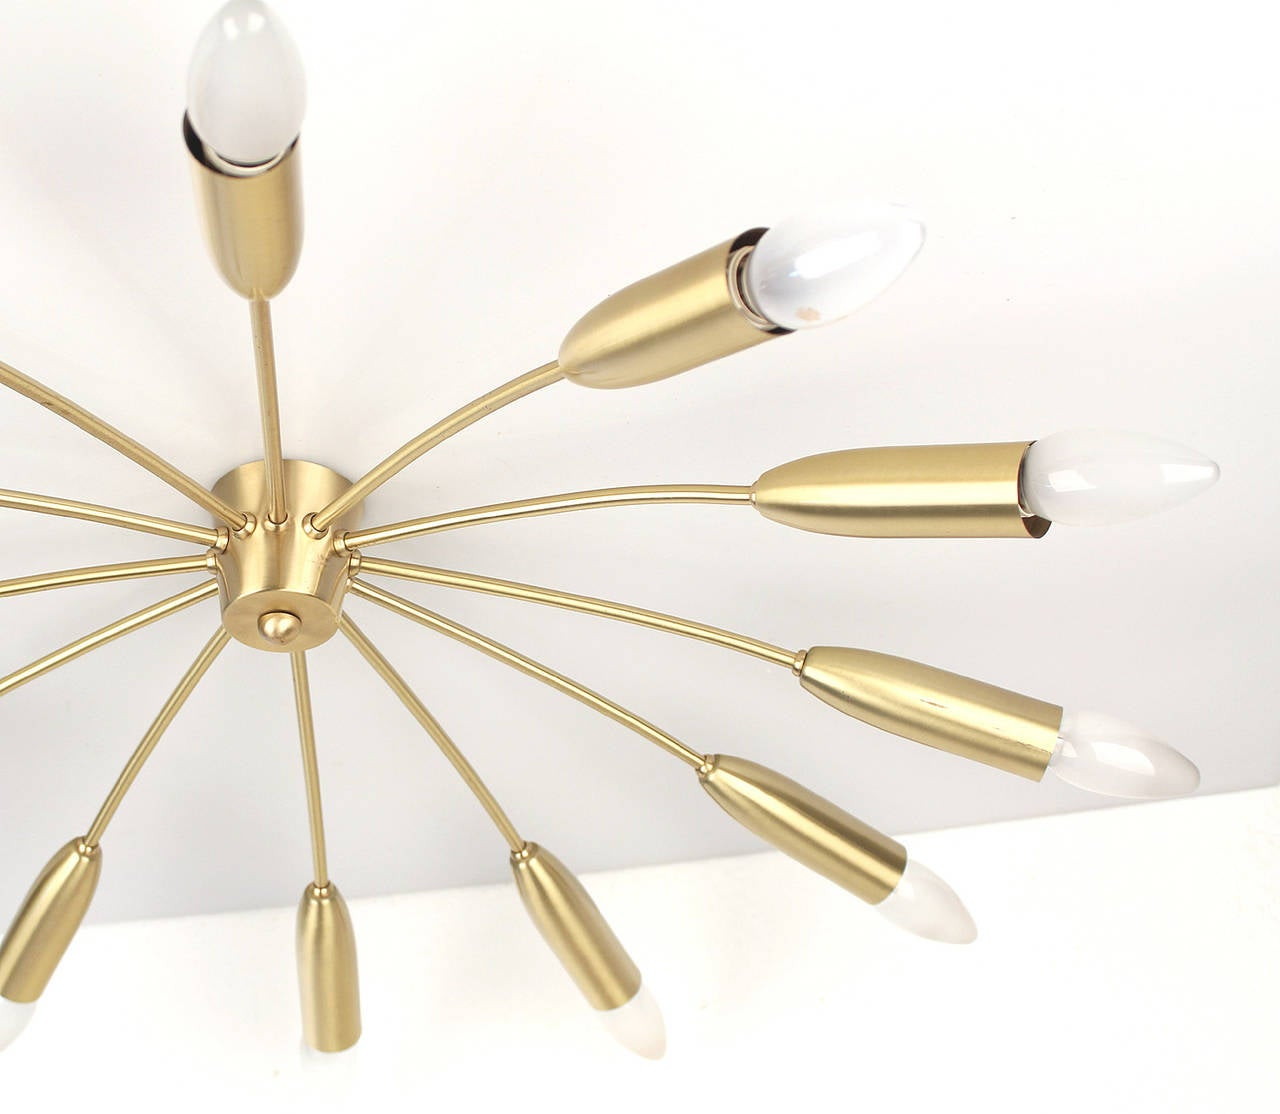 Brass Chandelier Ceiling Lights : Sputnik flush mount light antique lighting brass ceiling